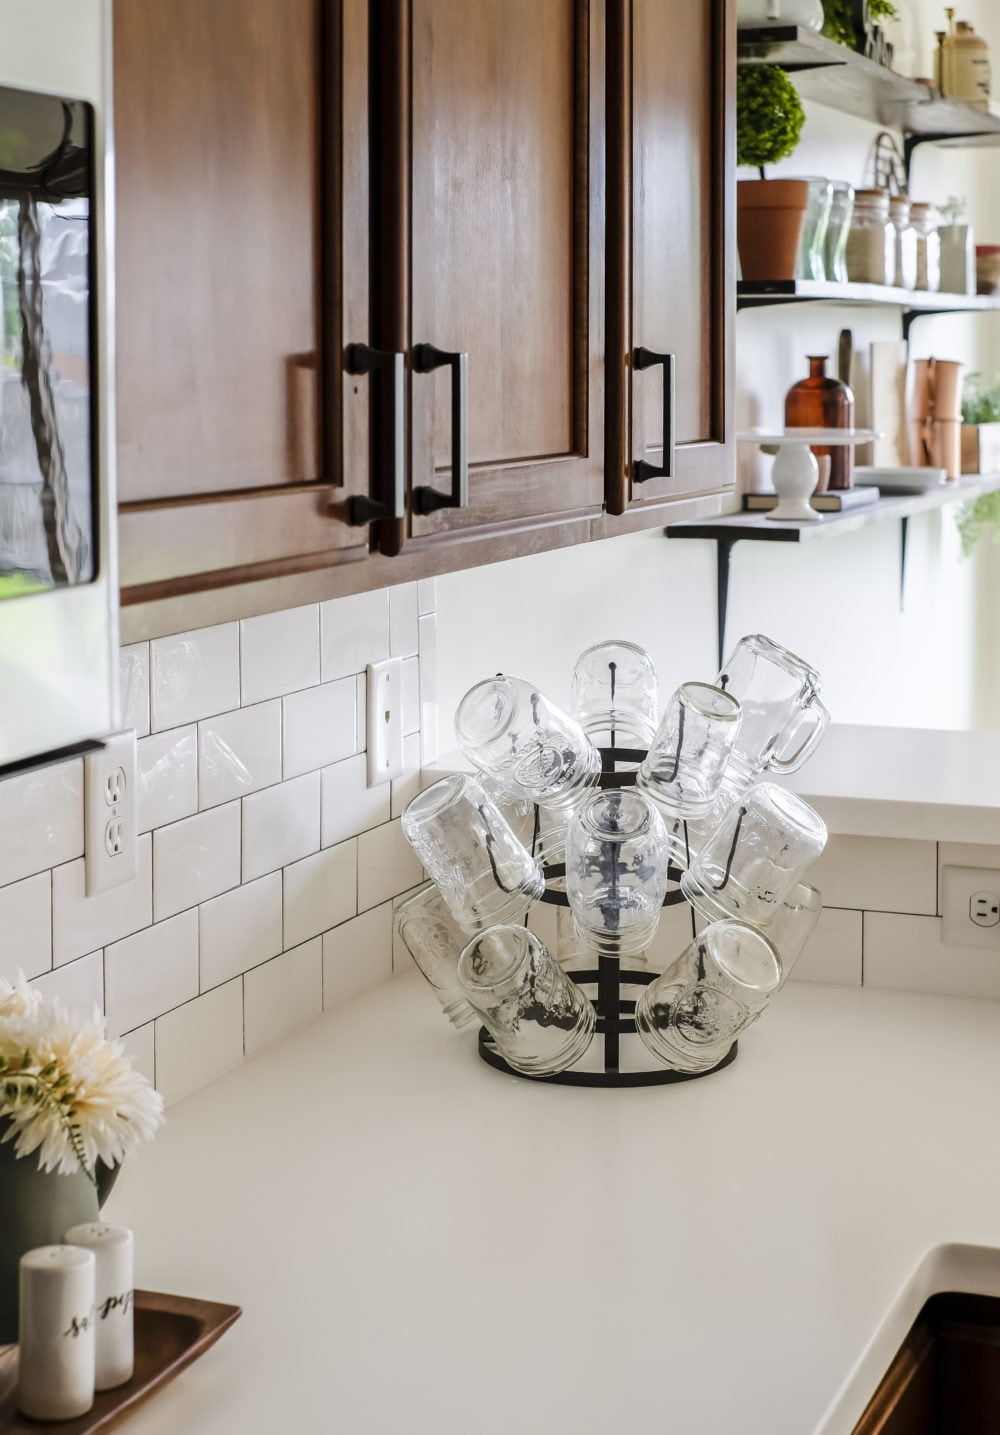 bright kitchen with mason jars on the countertop